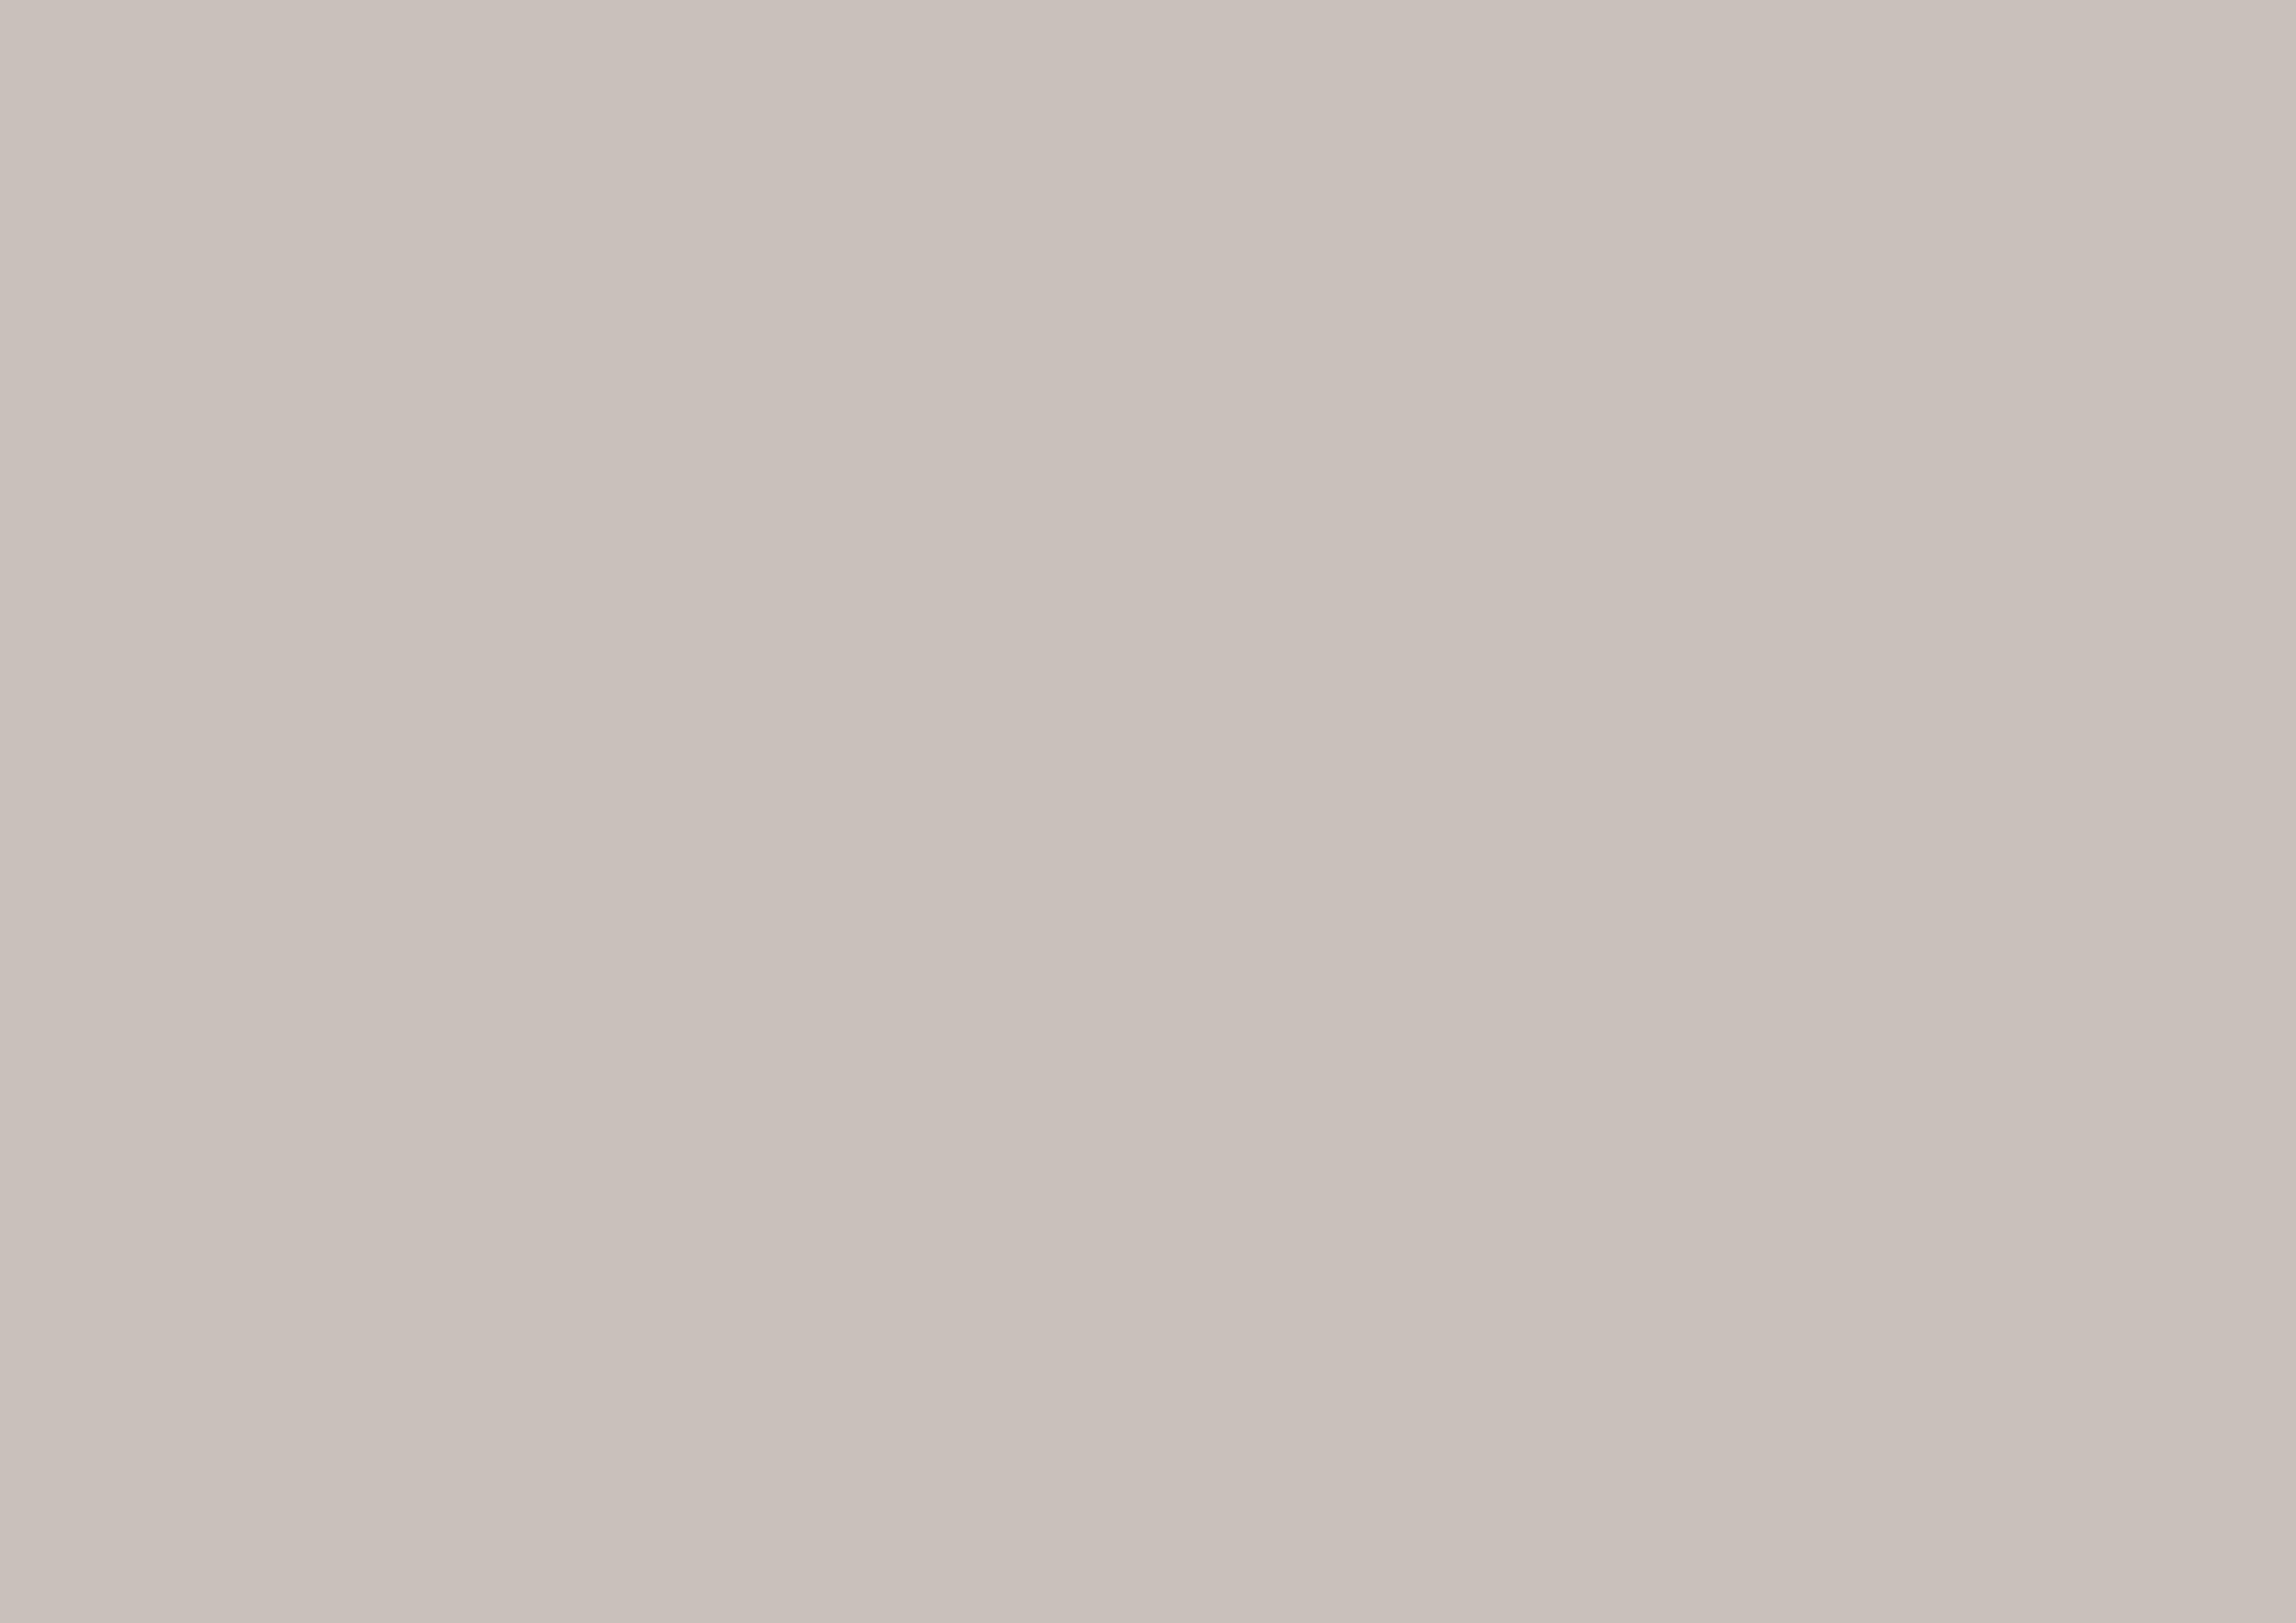 3508x2480 Pale Silver Solid Color Background